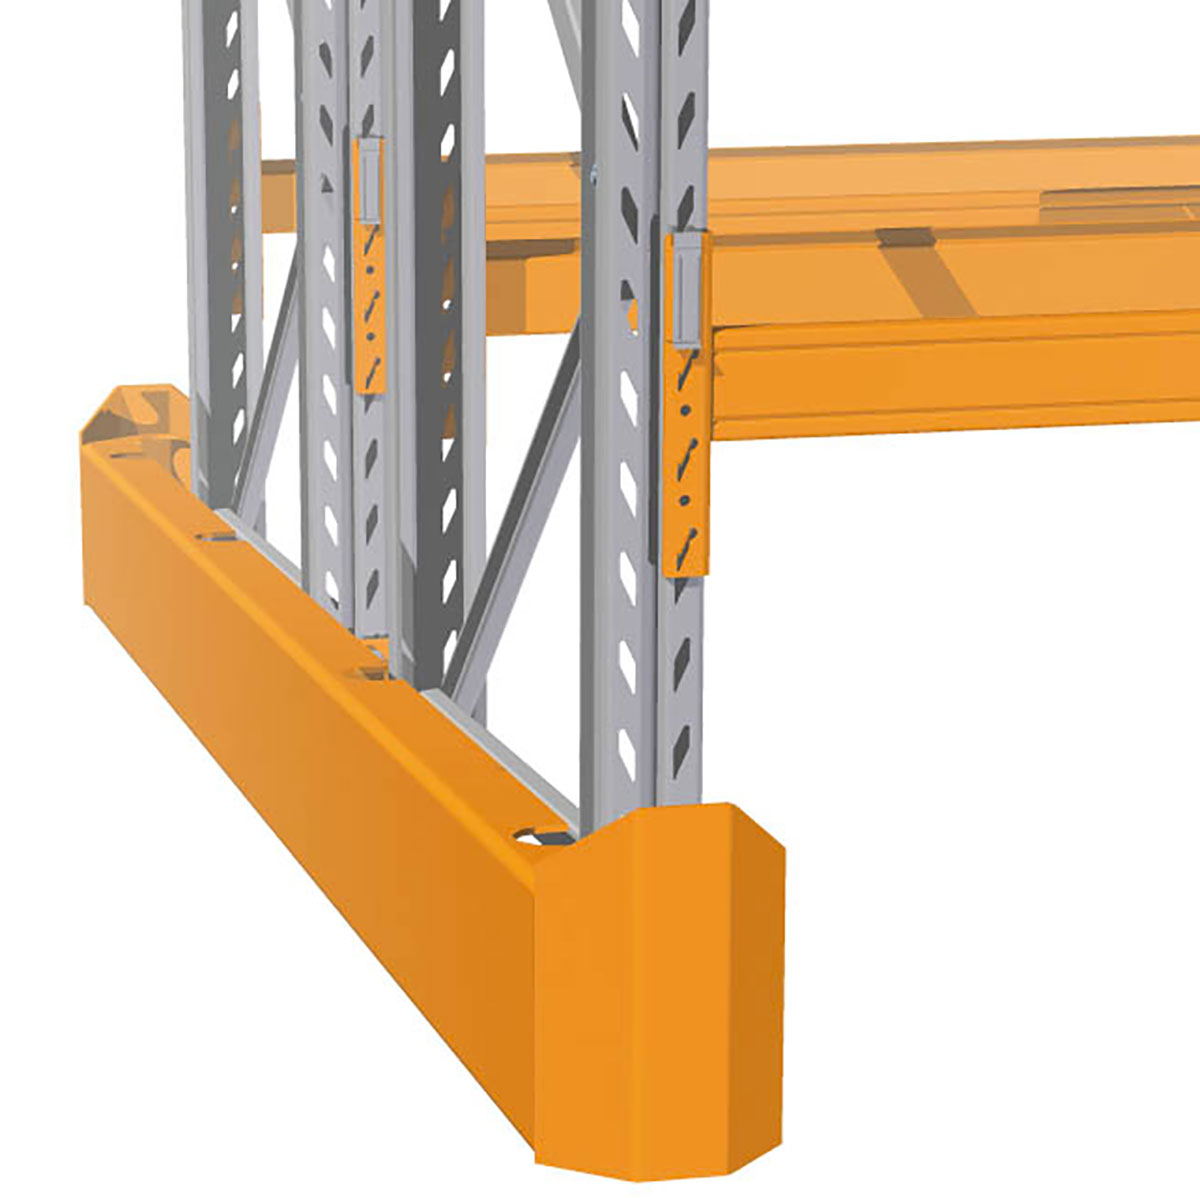 Rack-End-Protector Warehouse racking accessories